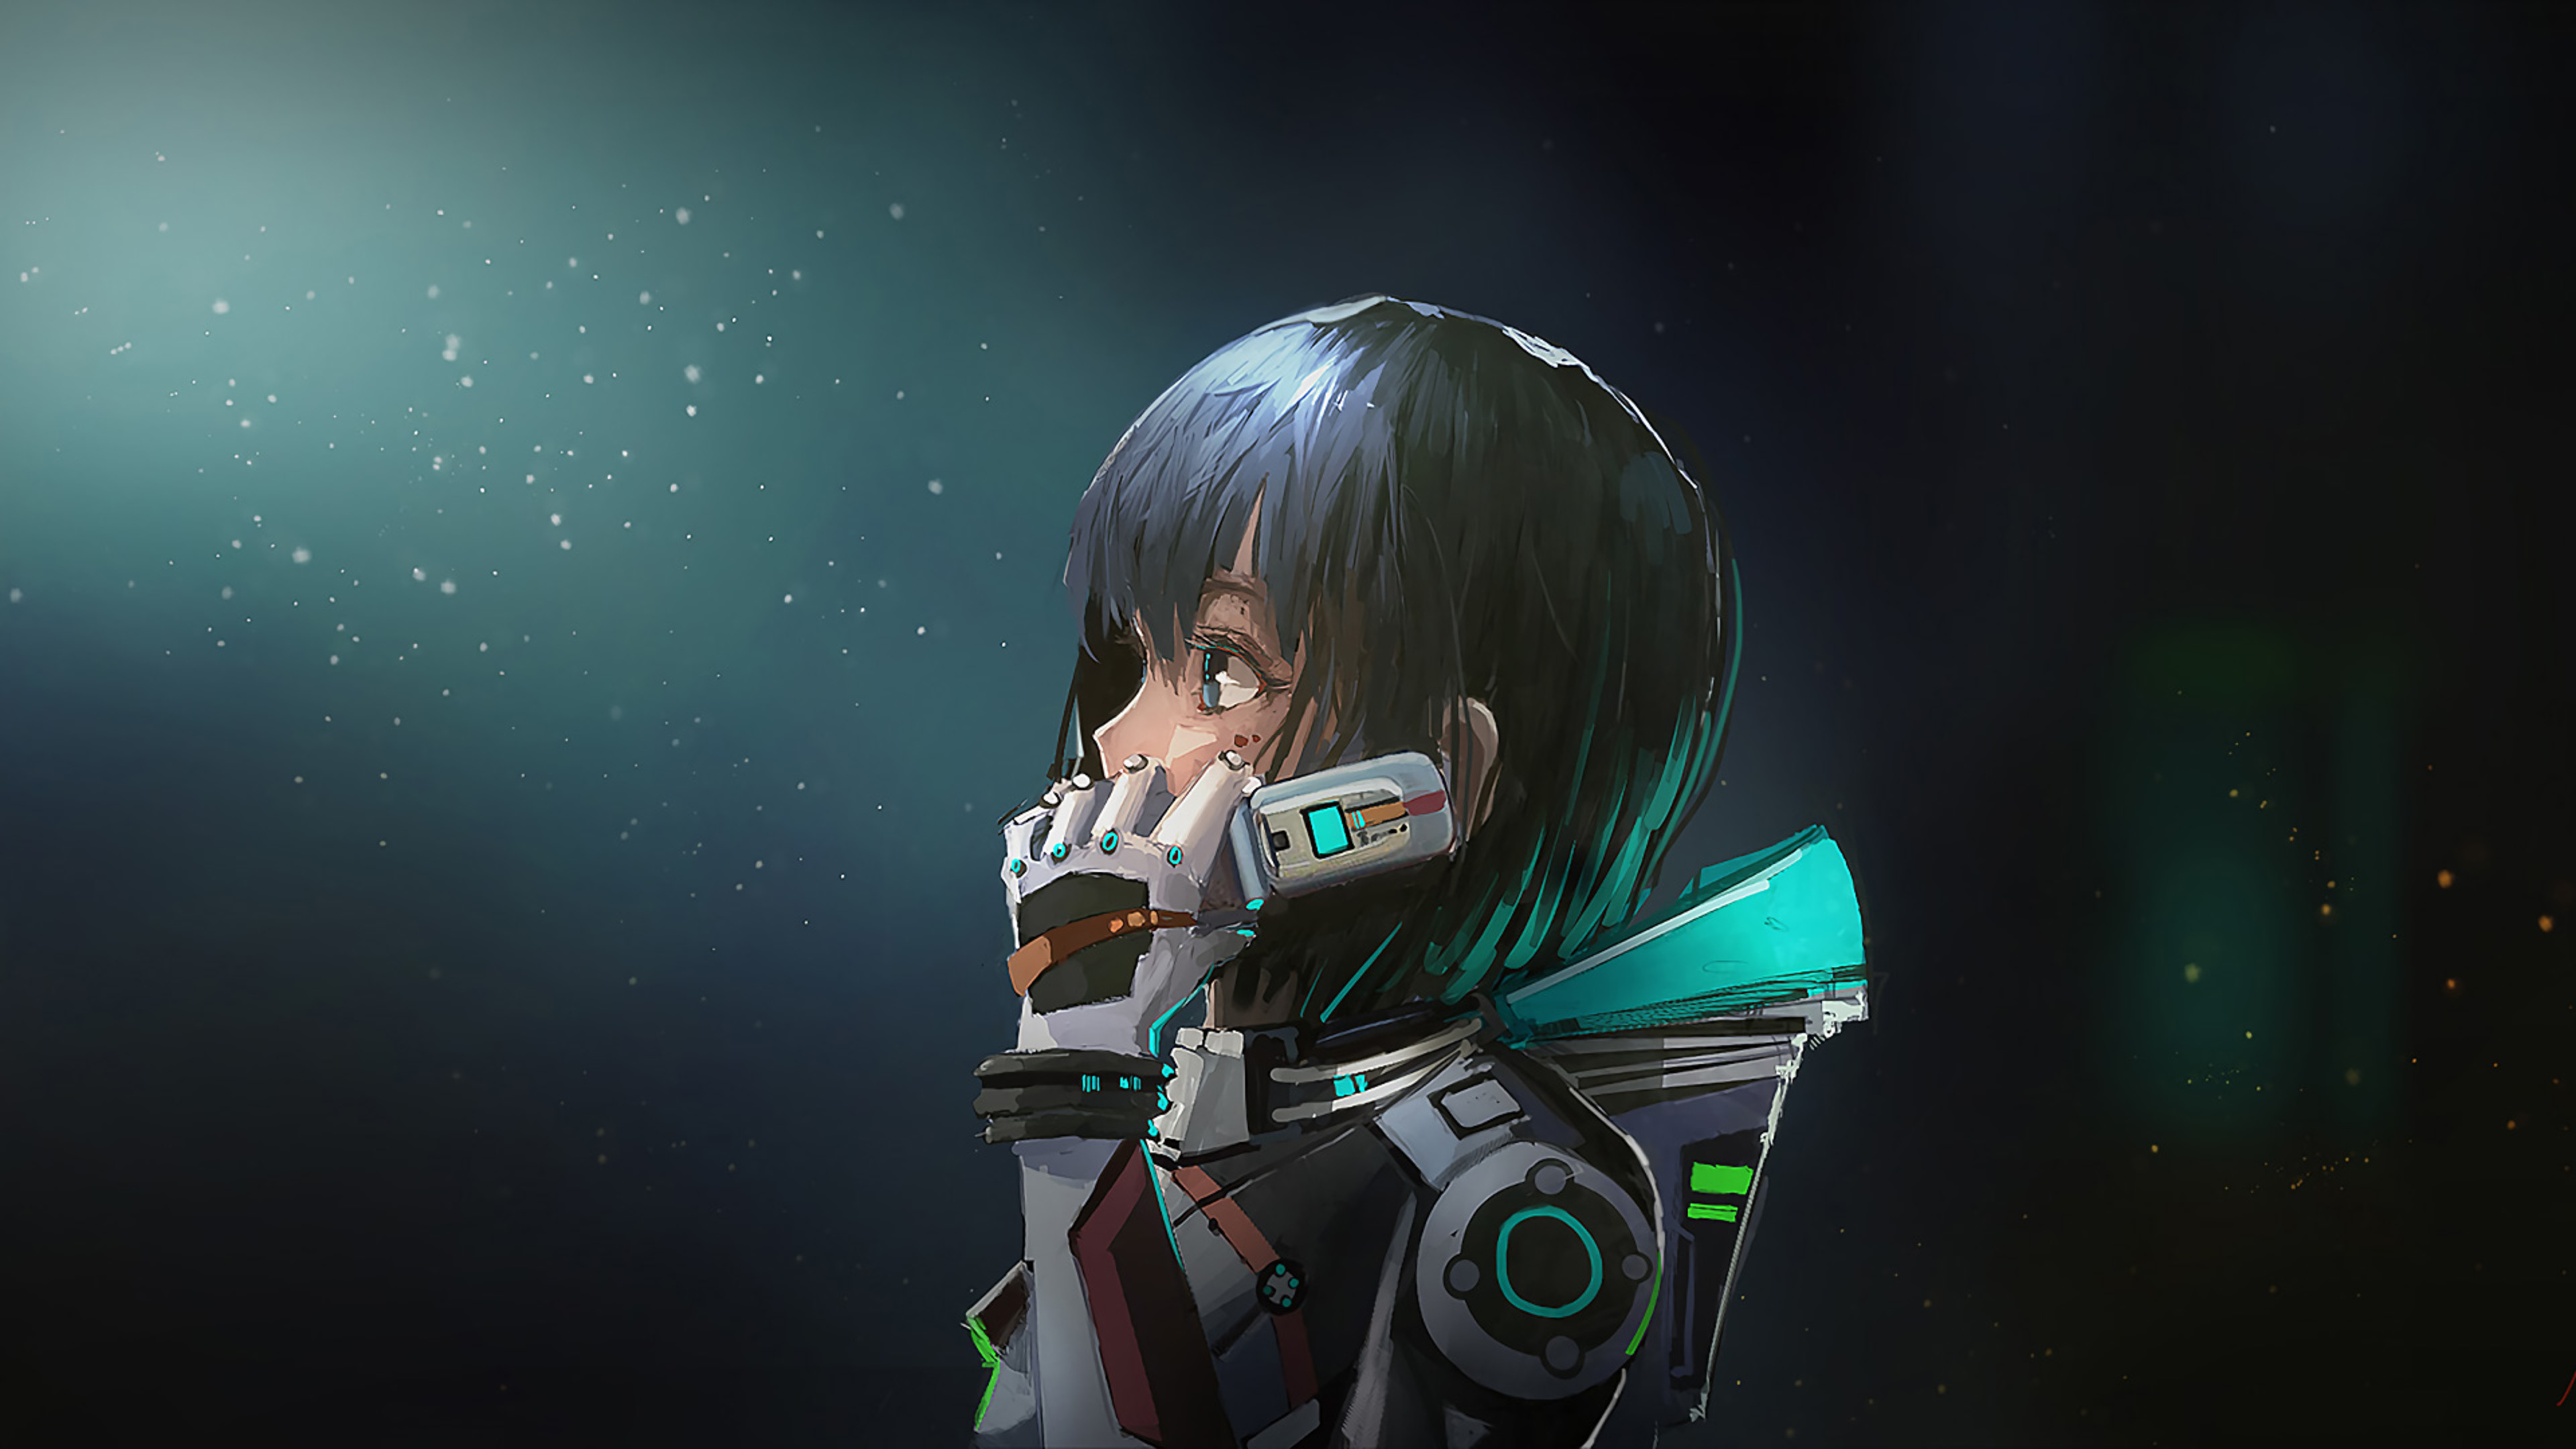 3840x2160 astronaut anime girl 4k hd 4k wallpapers images - Anime 4k hd wallpapers ...